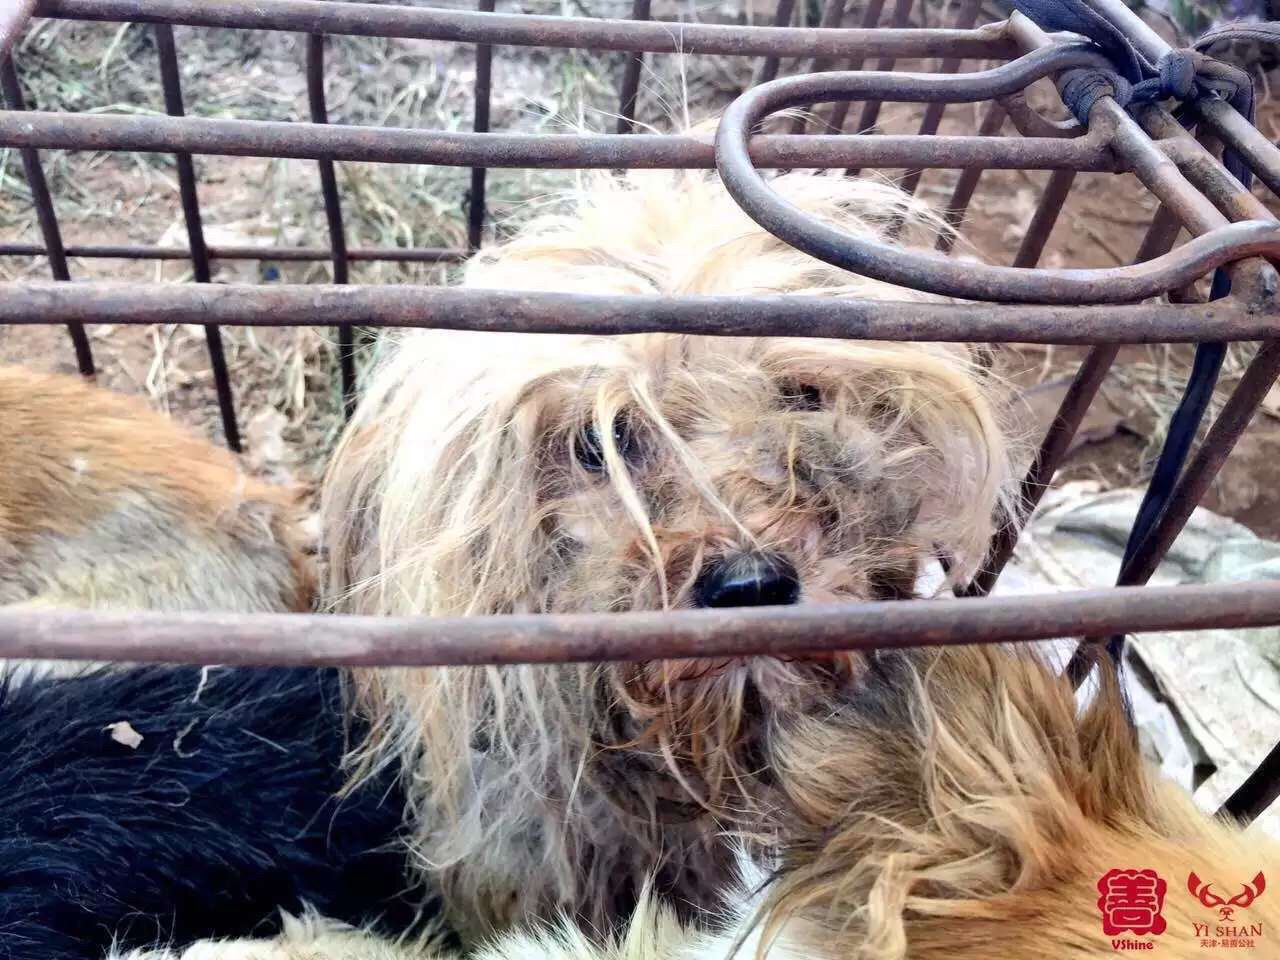 A dog in a cage at Yulin festival prior to sale of dog meat ban